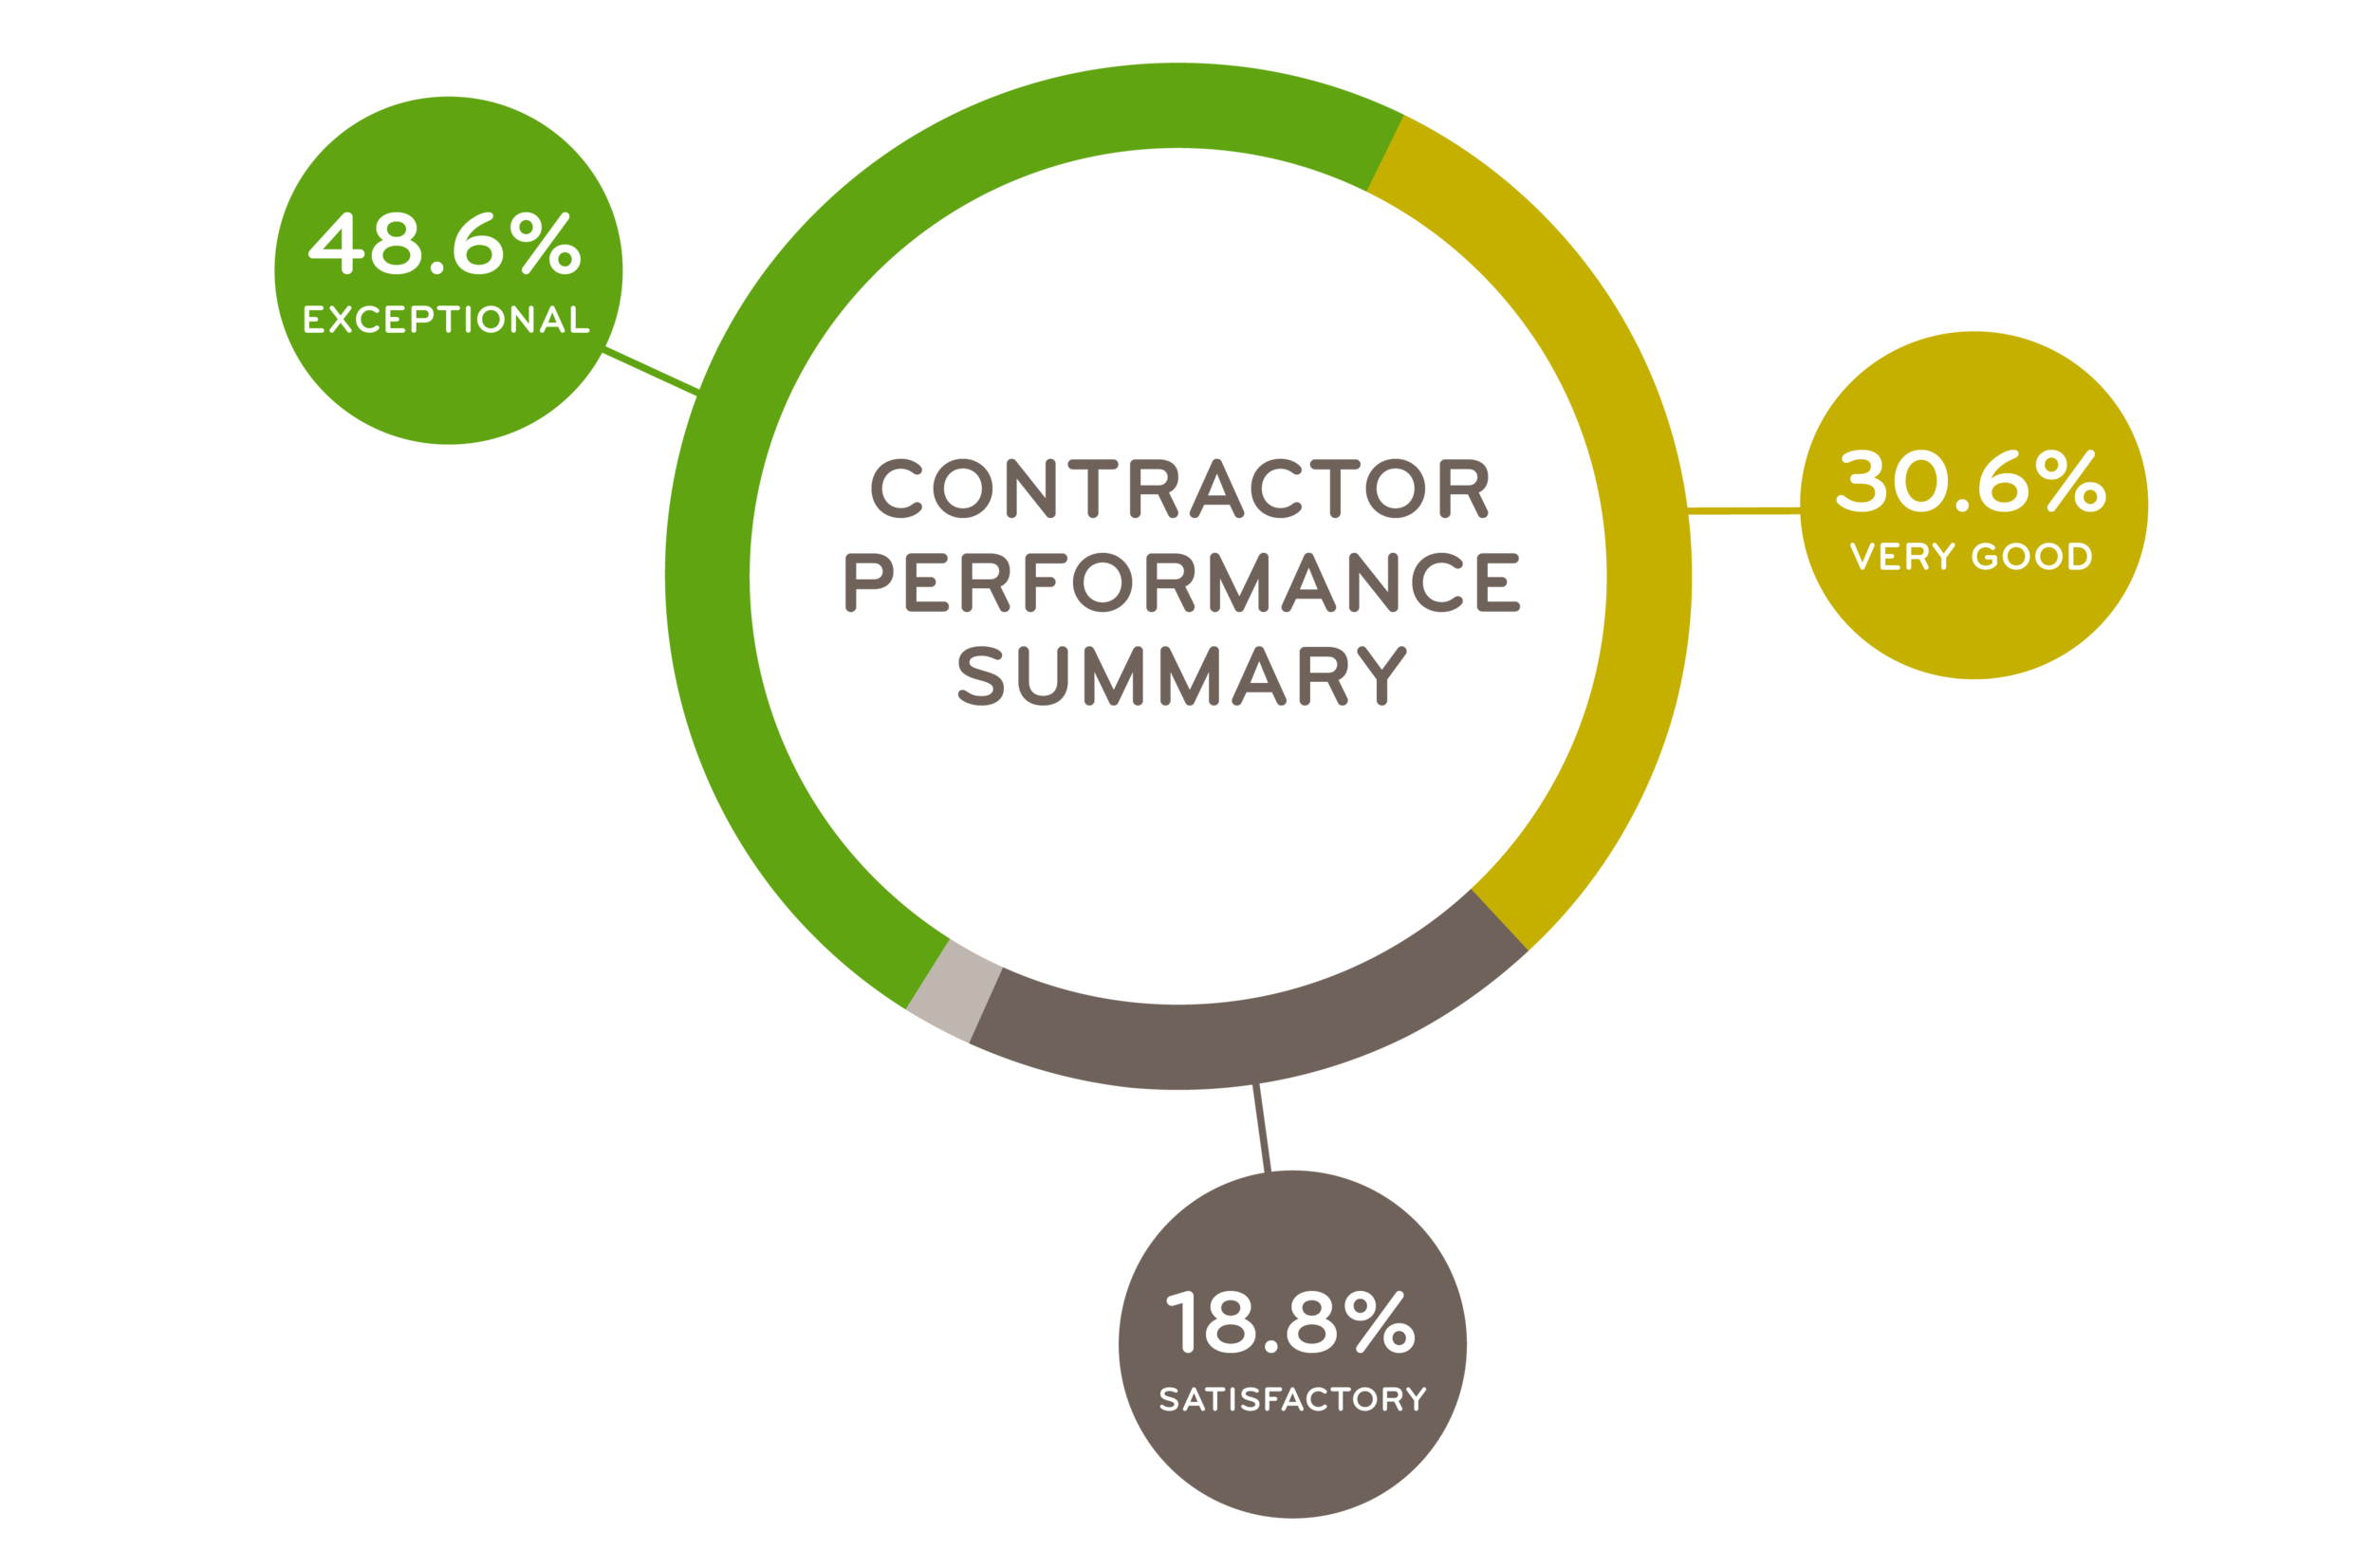 contractor_performance_summary-01.png